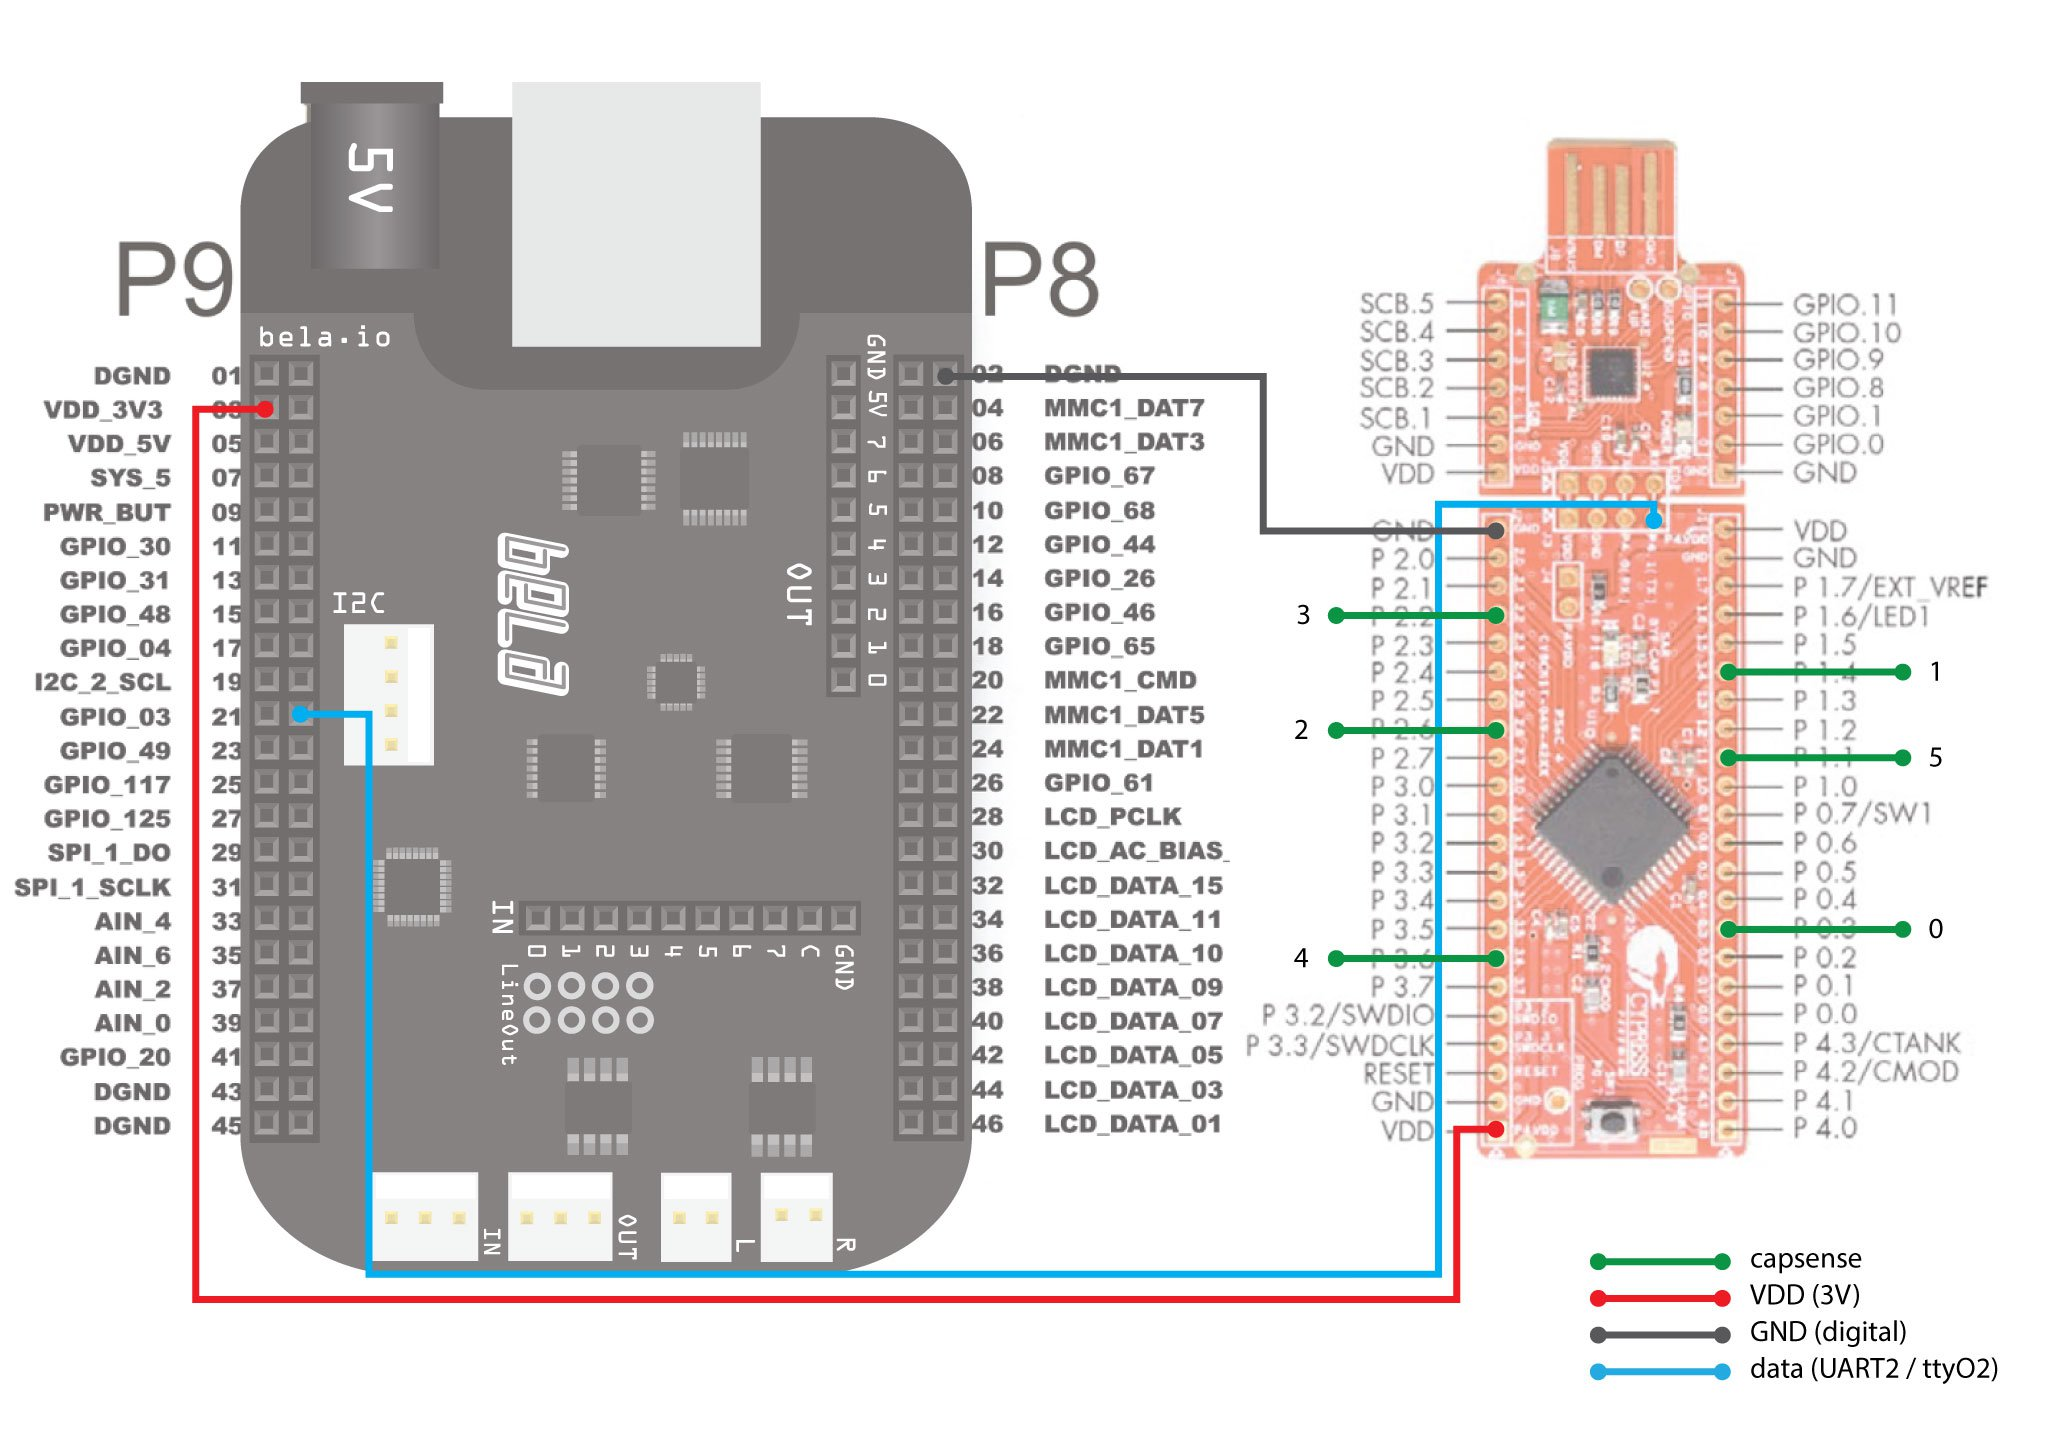 UART on BELA | TAI Studio on bluetooth schematic, xbee schematic, gps schematic, apple schematic, solar schematic, breadboard schematic, quadcopter schematic, lcd schematic, usb schematic, wireless schematic, msp430 schematic, arduino schematic, geiger counter schematic, flux capacitor schematic, electronics schematic,